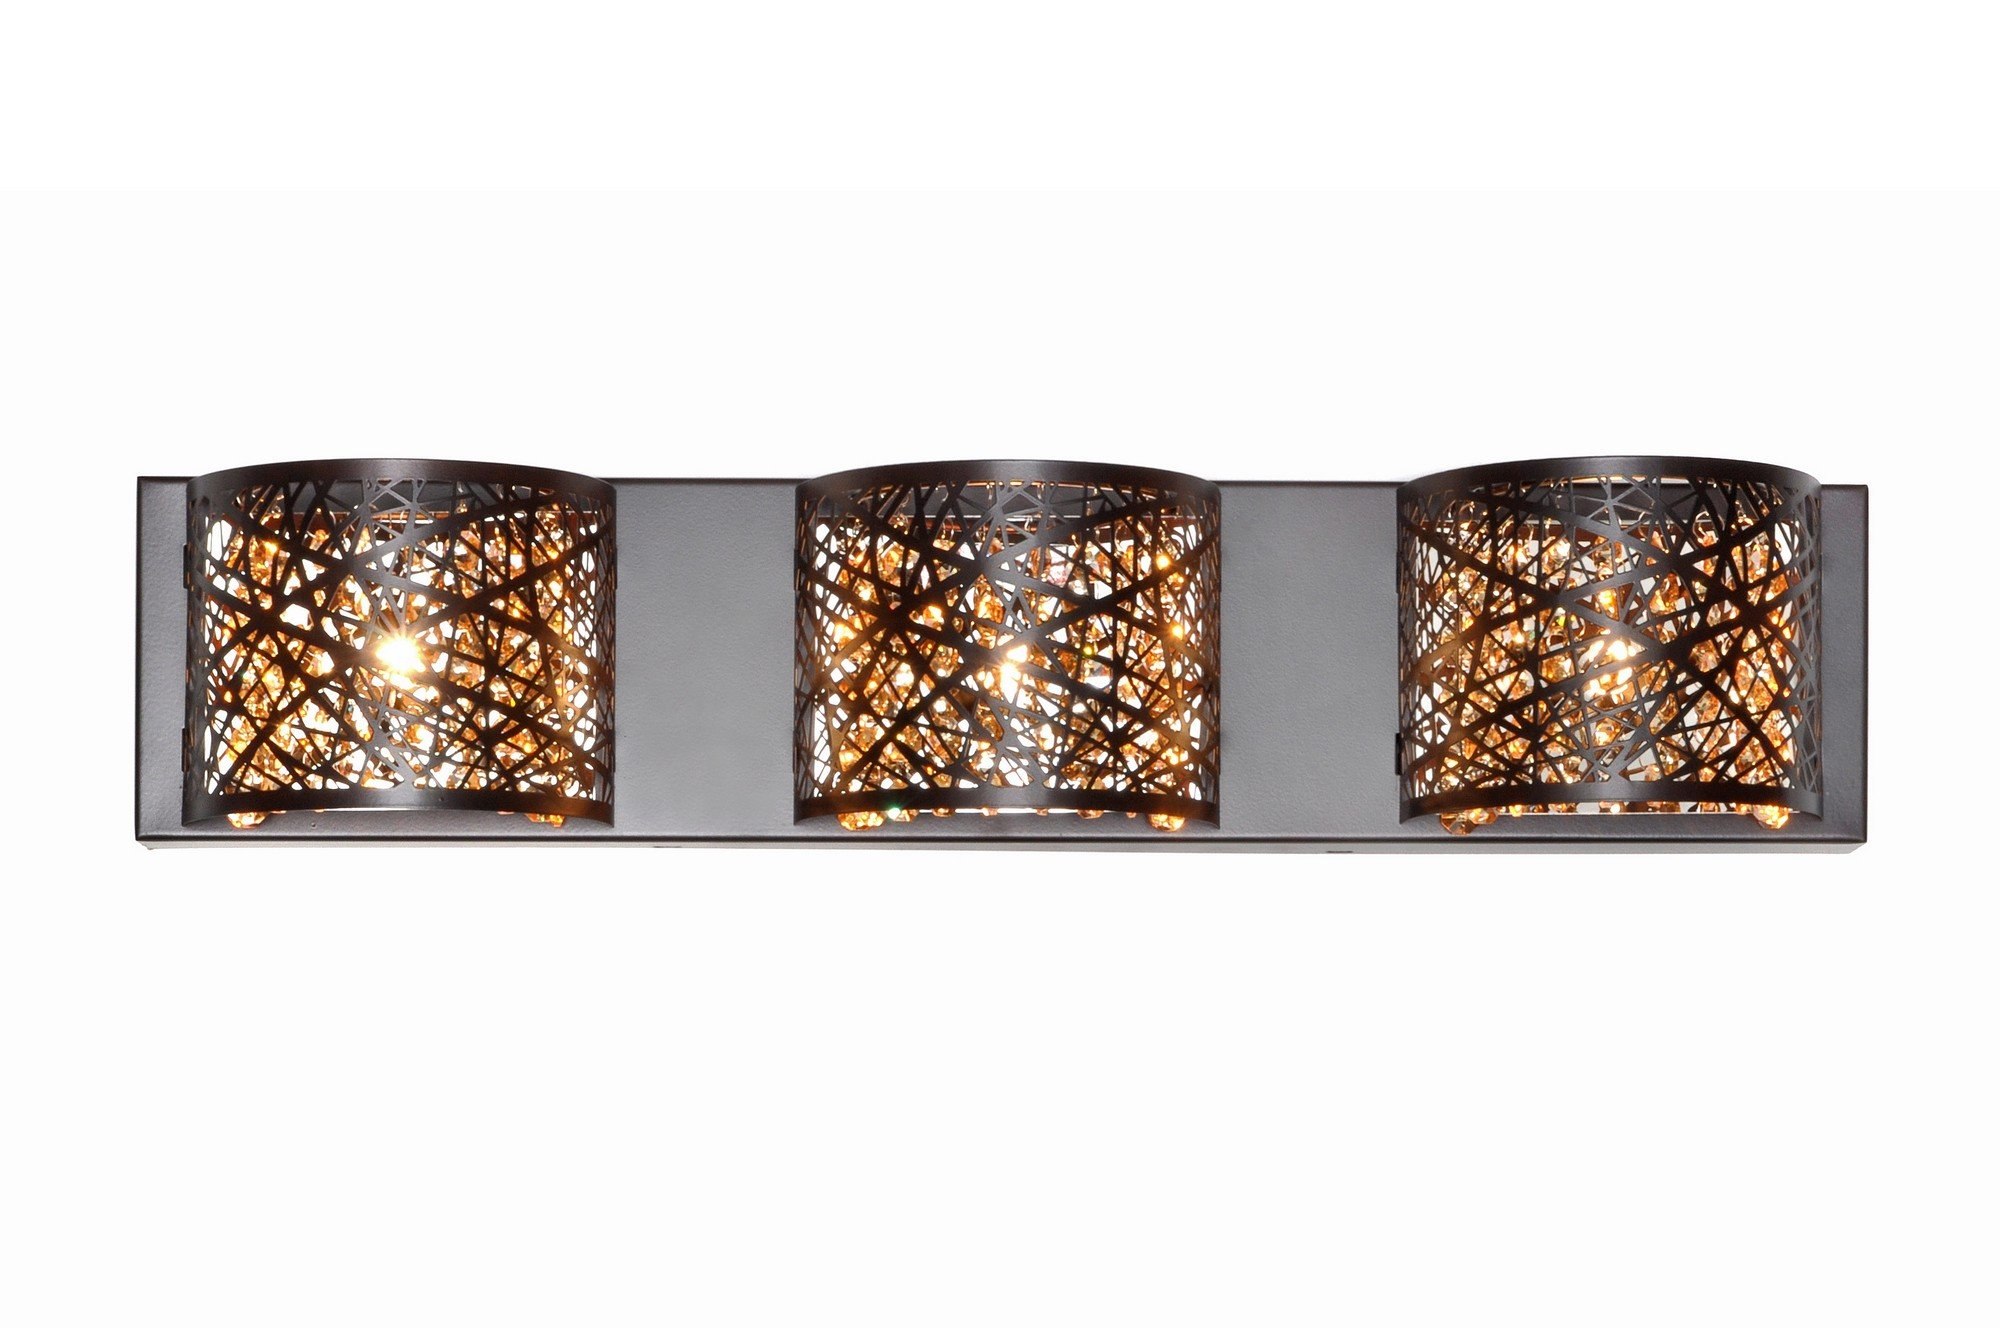 ET2 Lighting E21316-10BZ Bathroom Fixture with Metal Shades – Wall Mounted Bronze Finished Lighting Equipment for Bathroom Setting.  Restroom Lights